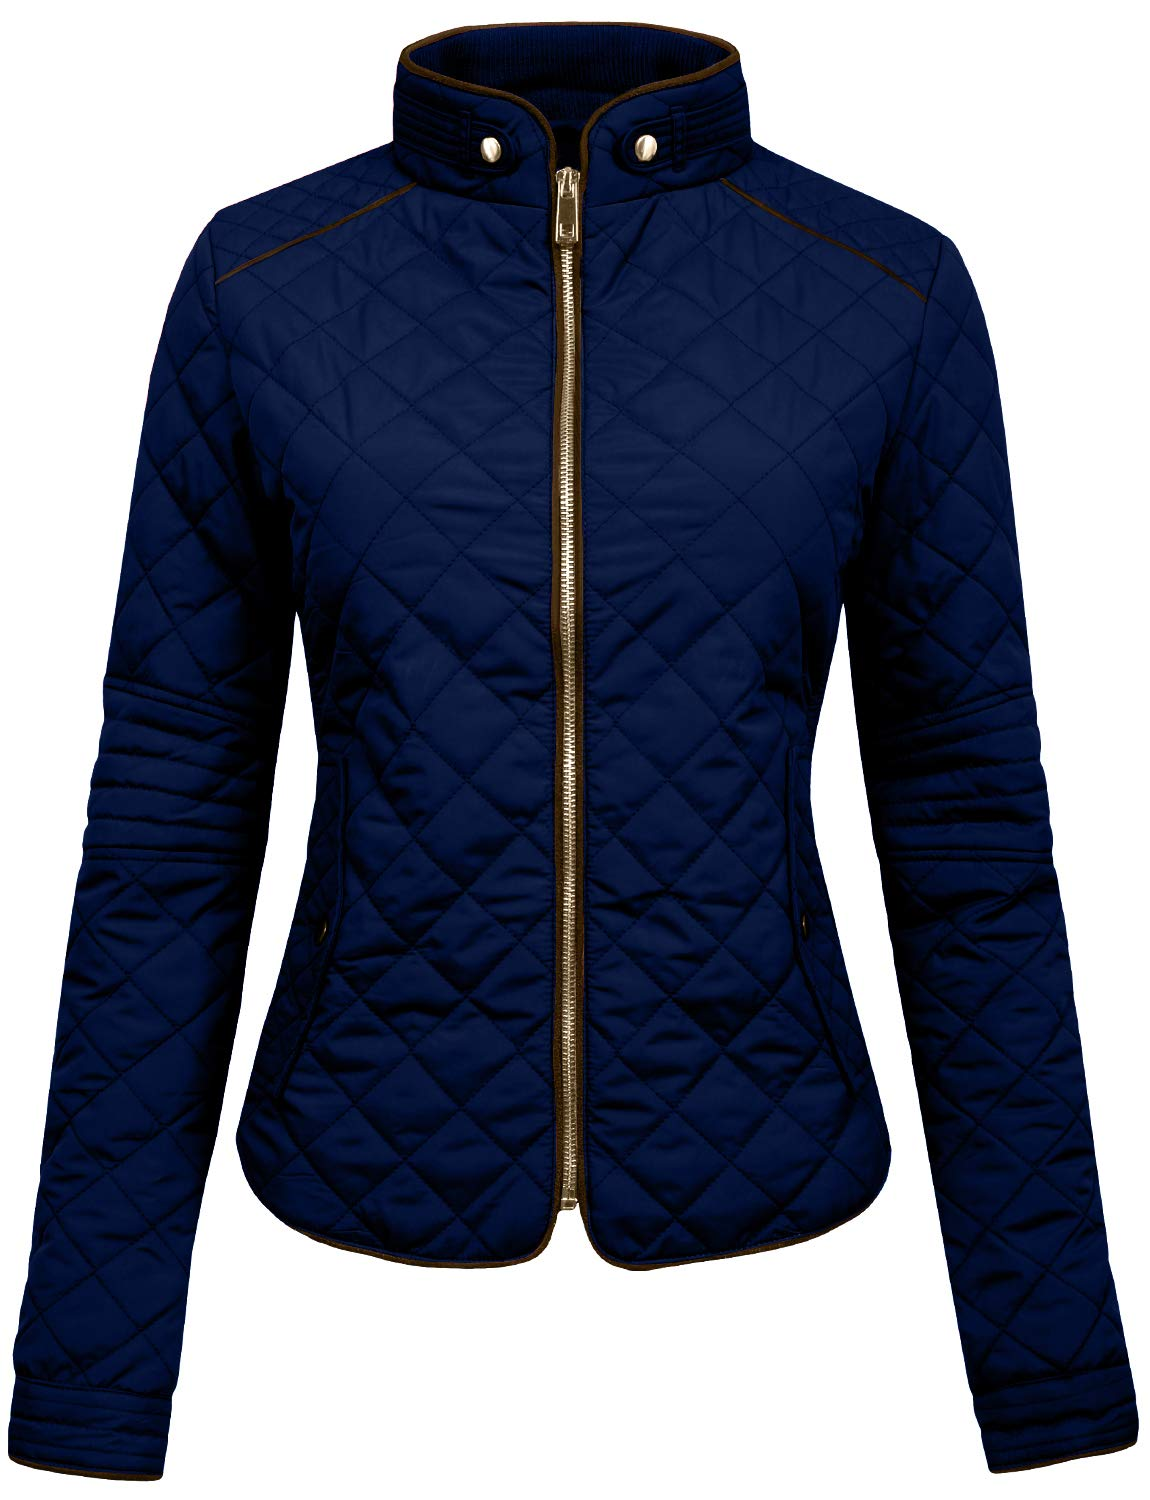 NE PEOPLE Womens Lightweight Quilted Zip Jacket, Large, NEWJ22NAVY